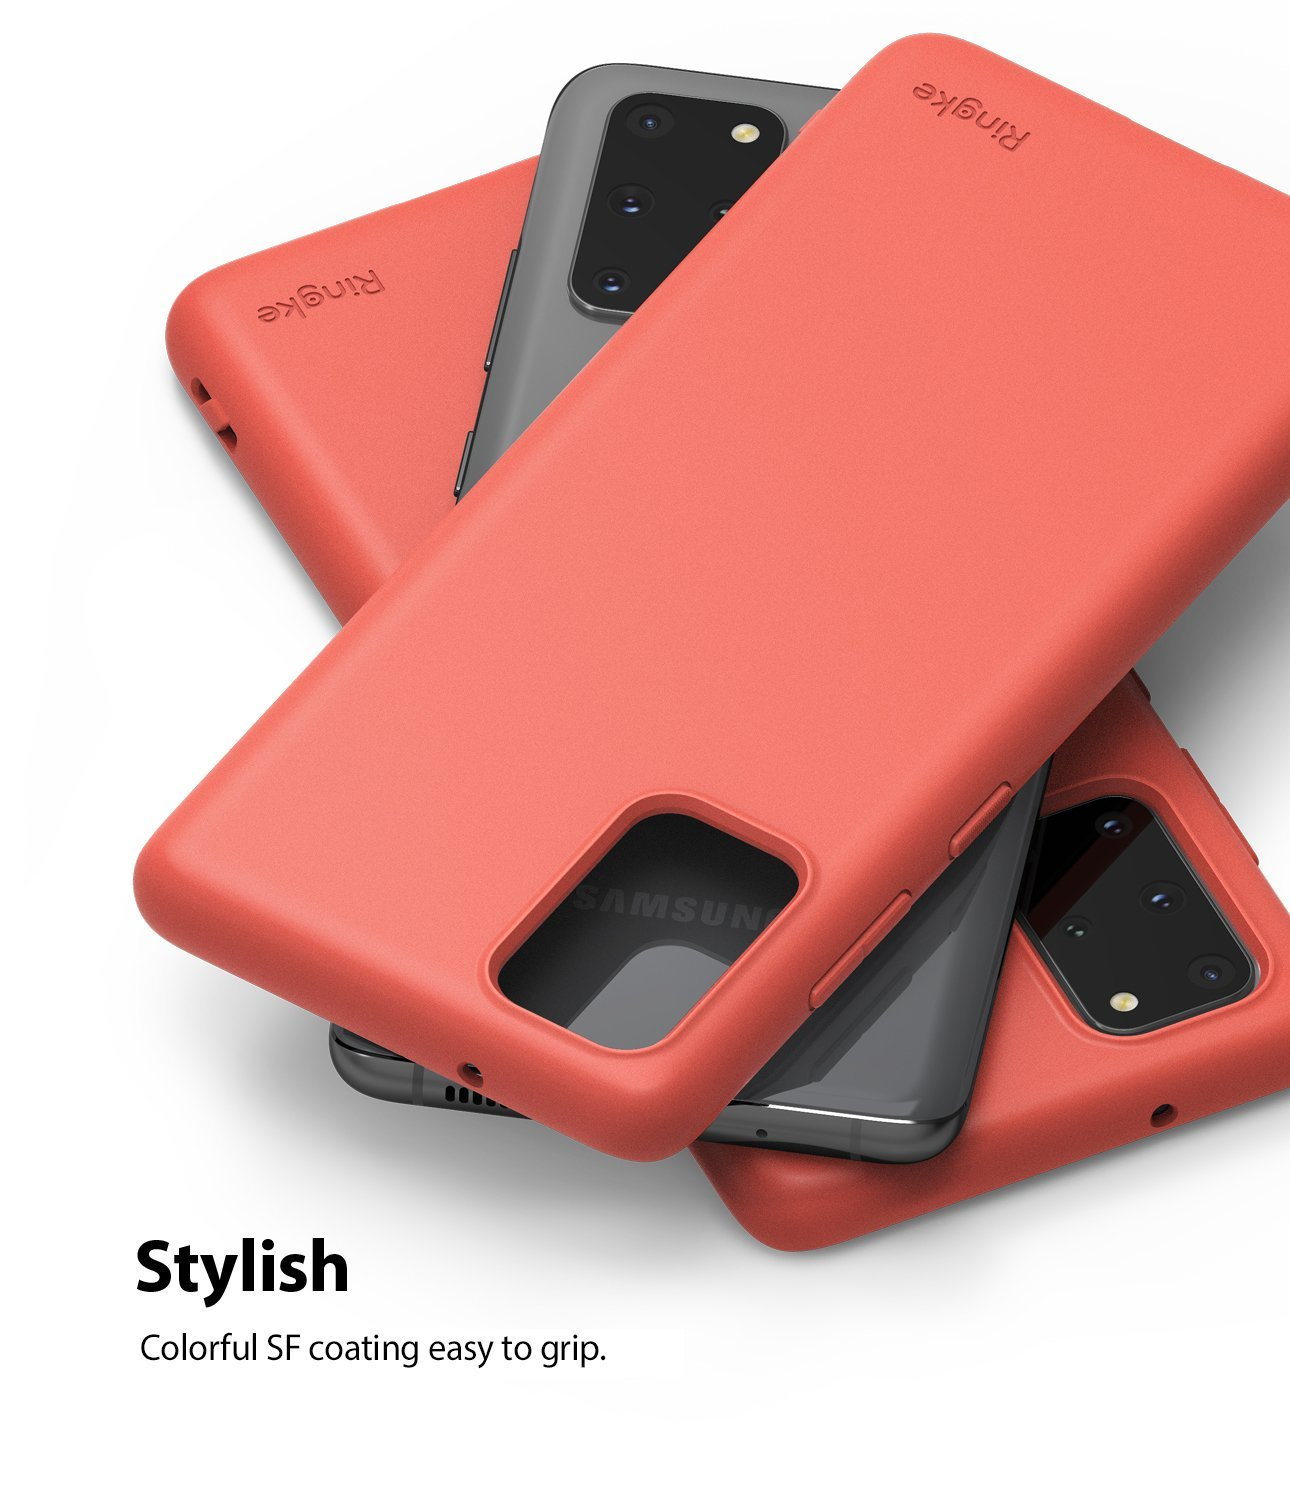 Galaxy S20 plus Case ringke Air-S, coral, stylish design